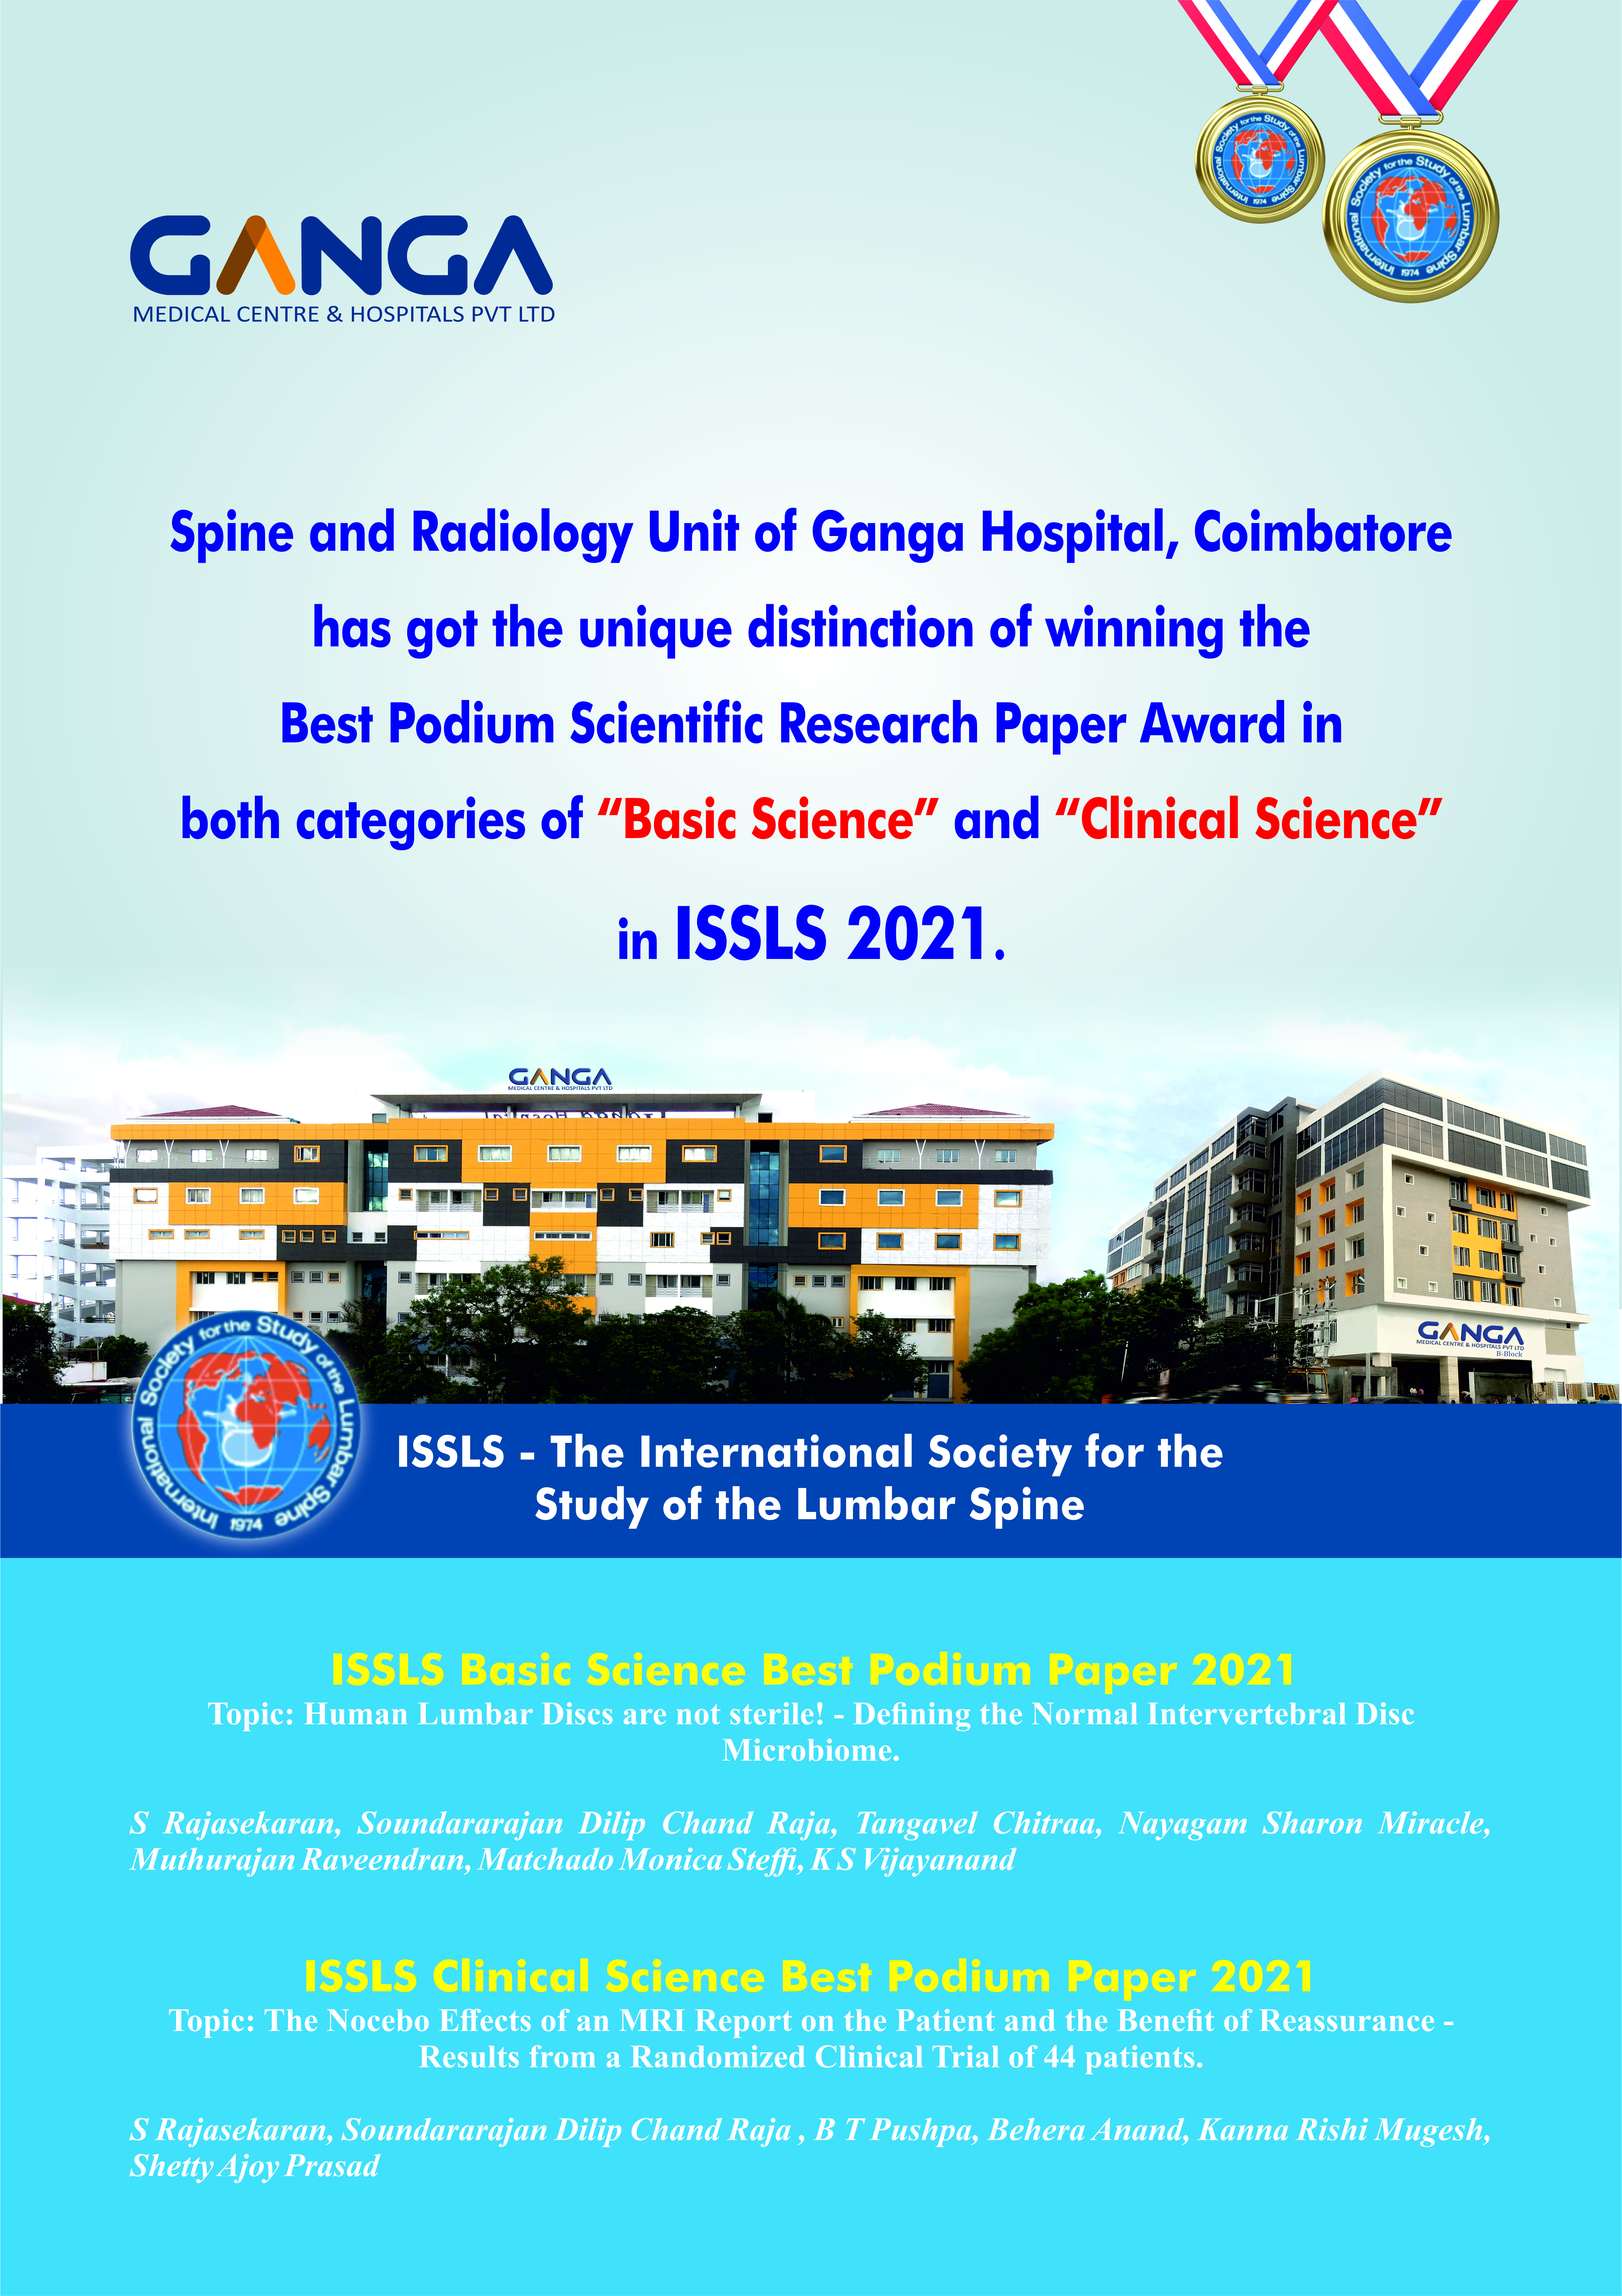 ISSLS Clinical Science Best Podium Paper Award 2021